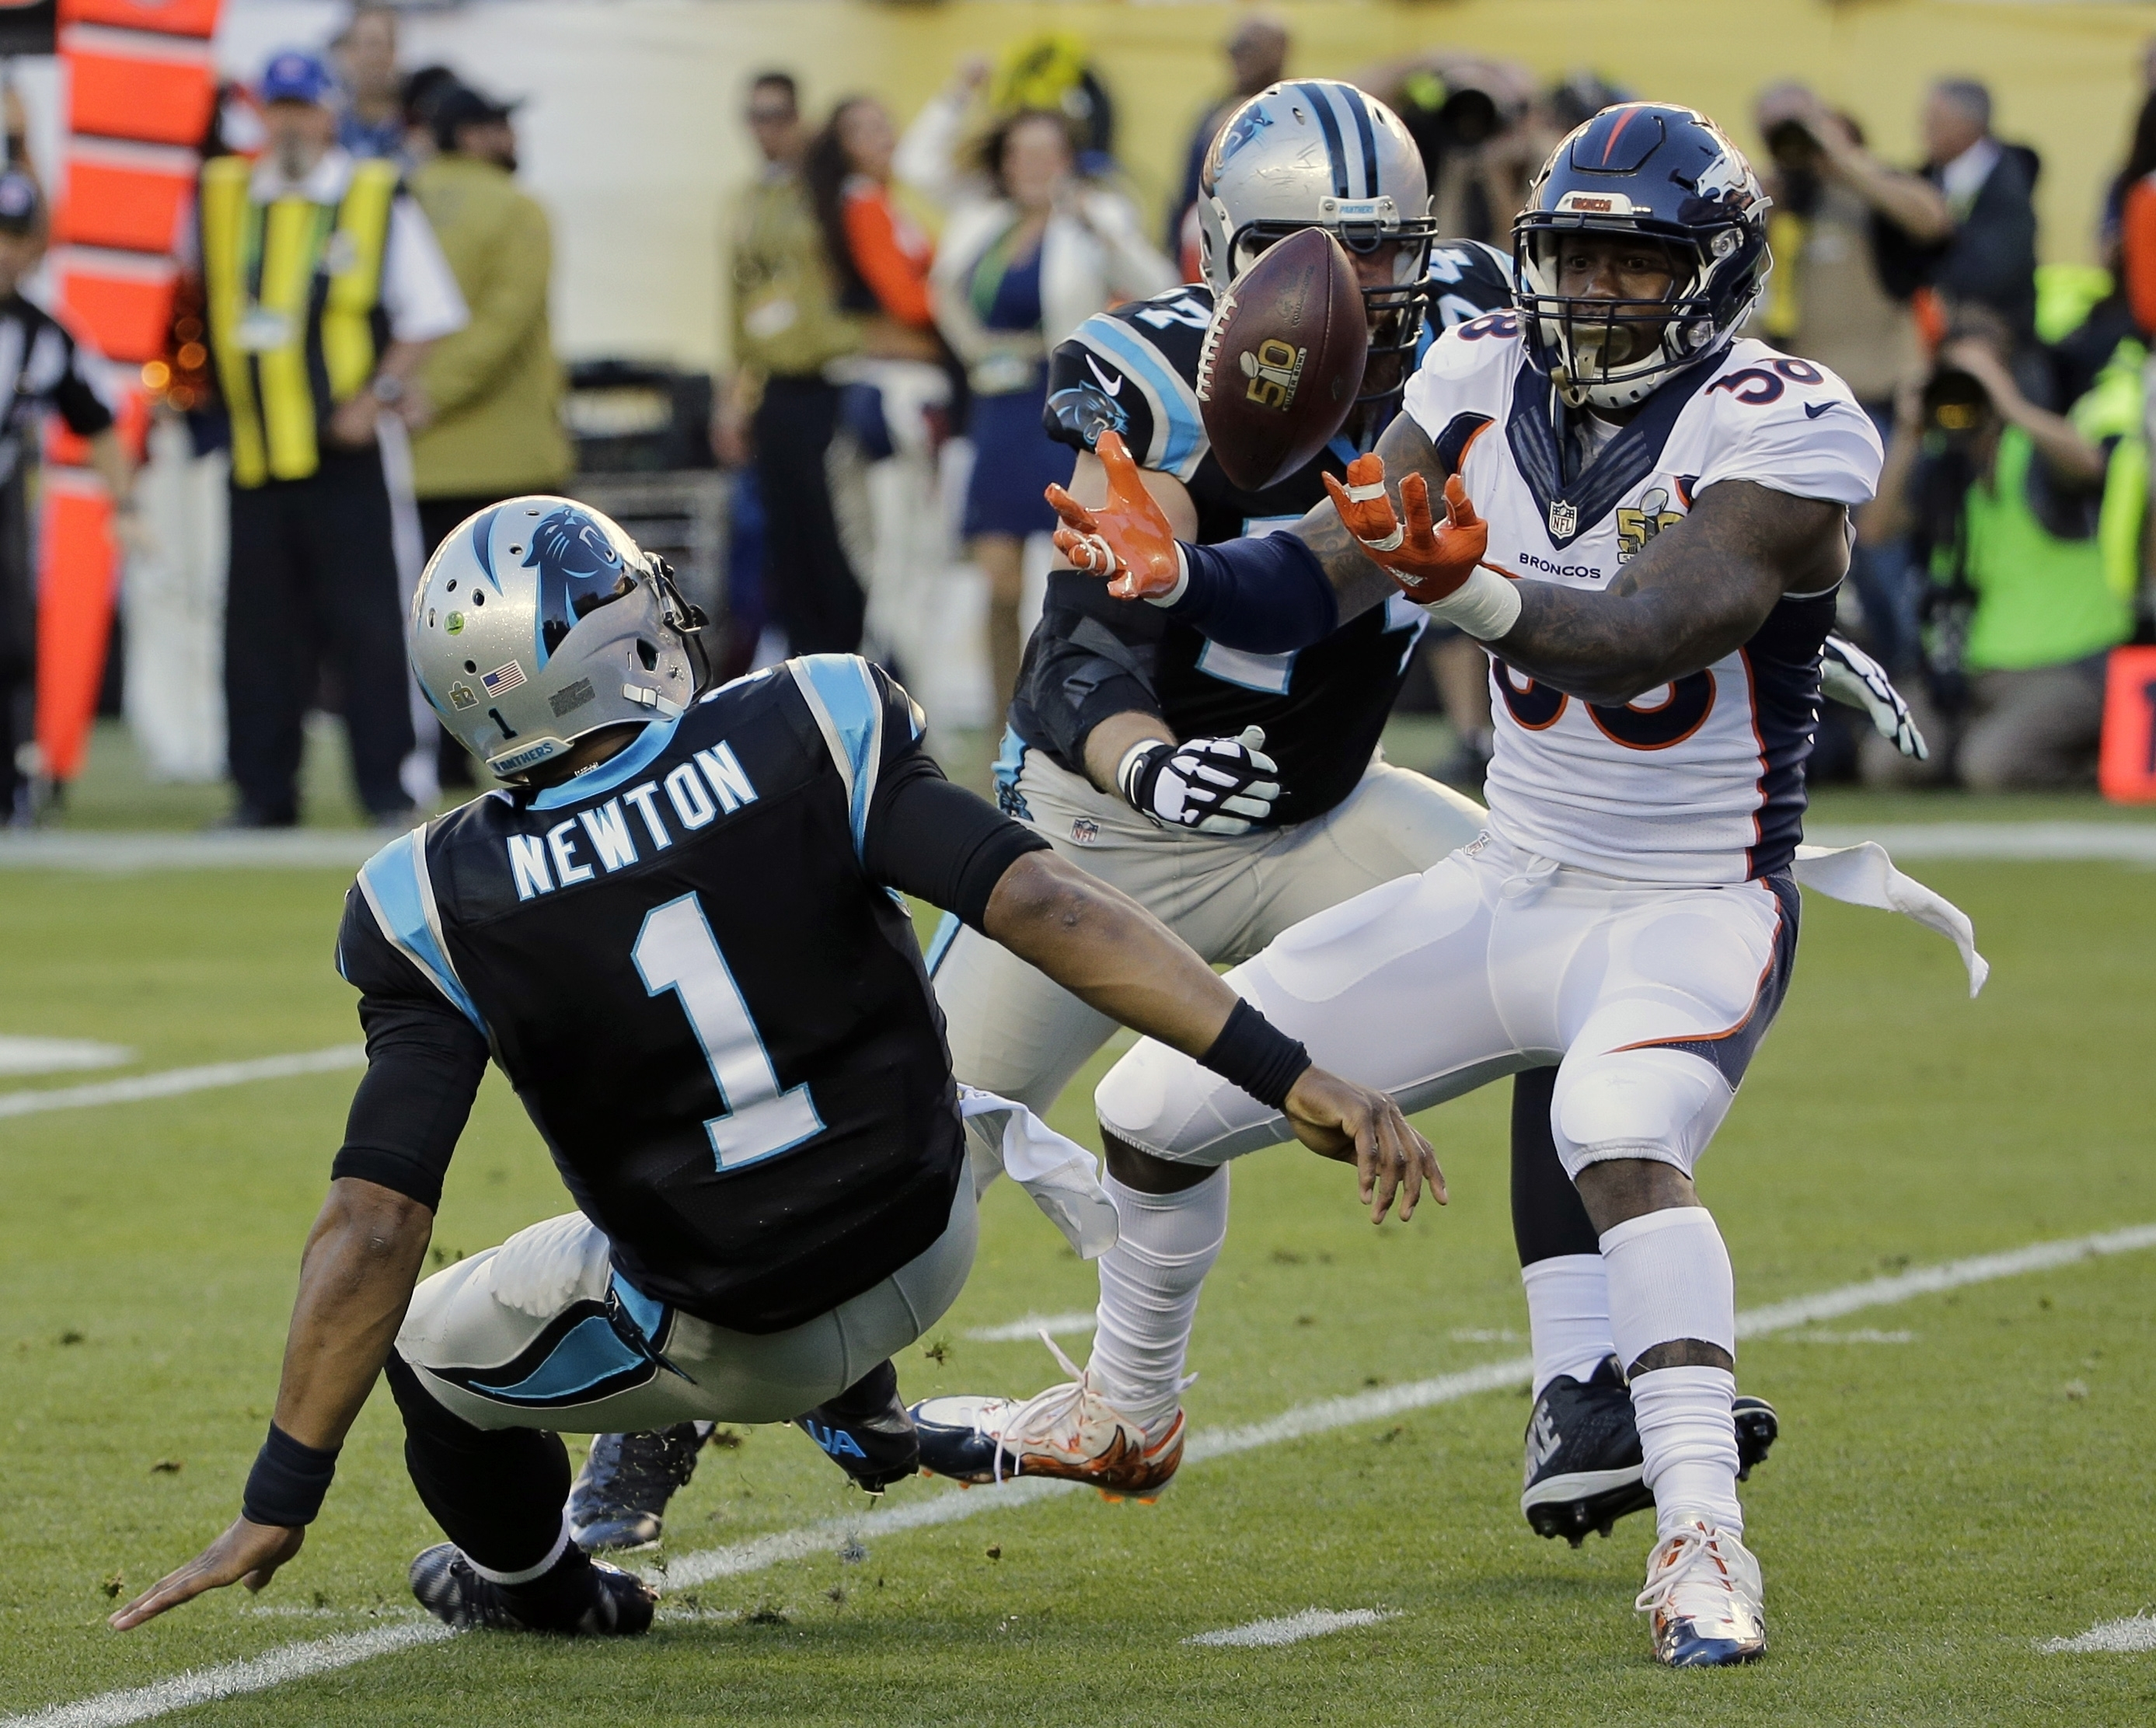 FILE - In this Feb. 7, 2016, file photo, Denver Broncos' Von Miller (58) strips the ball from Carolina Panthers' Cam Newton (1) during the first half of the NFL Super Bowl 50 football game, in Santa Clara, Calif. Von Miller got the best of Cam Newton both